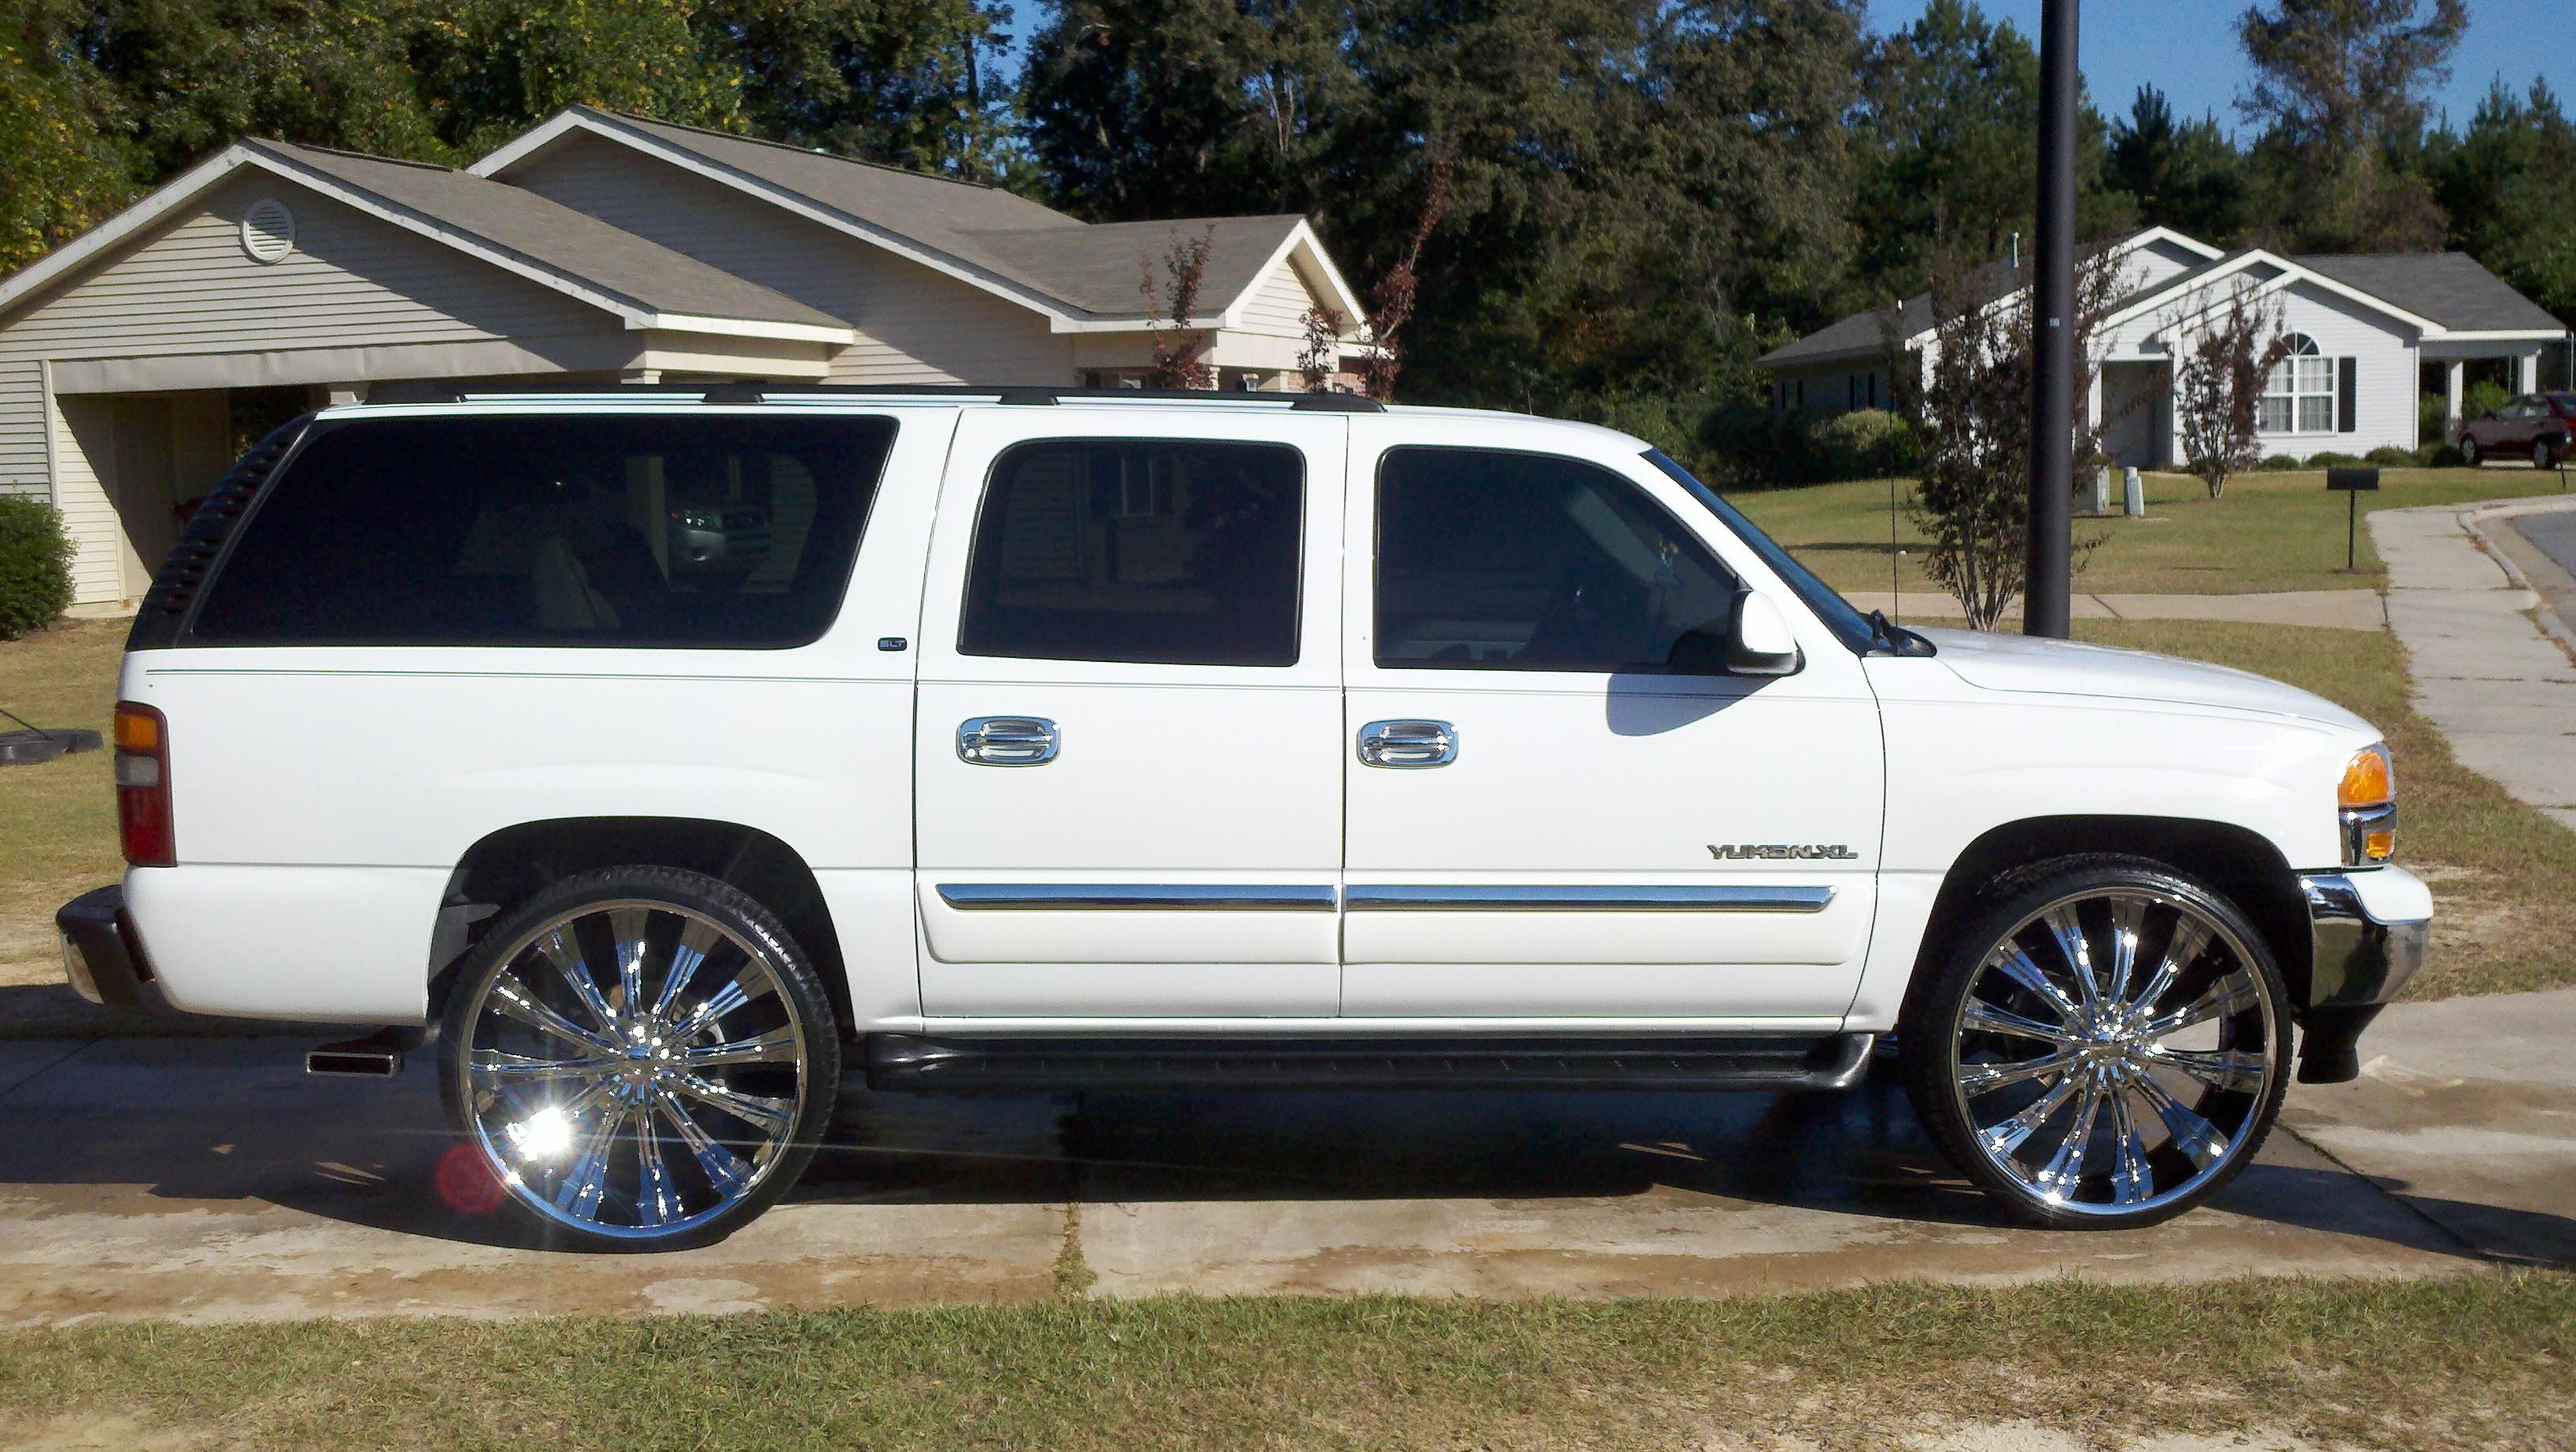 2004 White Custom Yukon Xl Google Search Suv Trucks Gmc Yukon Gmc Yukon Xl